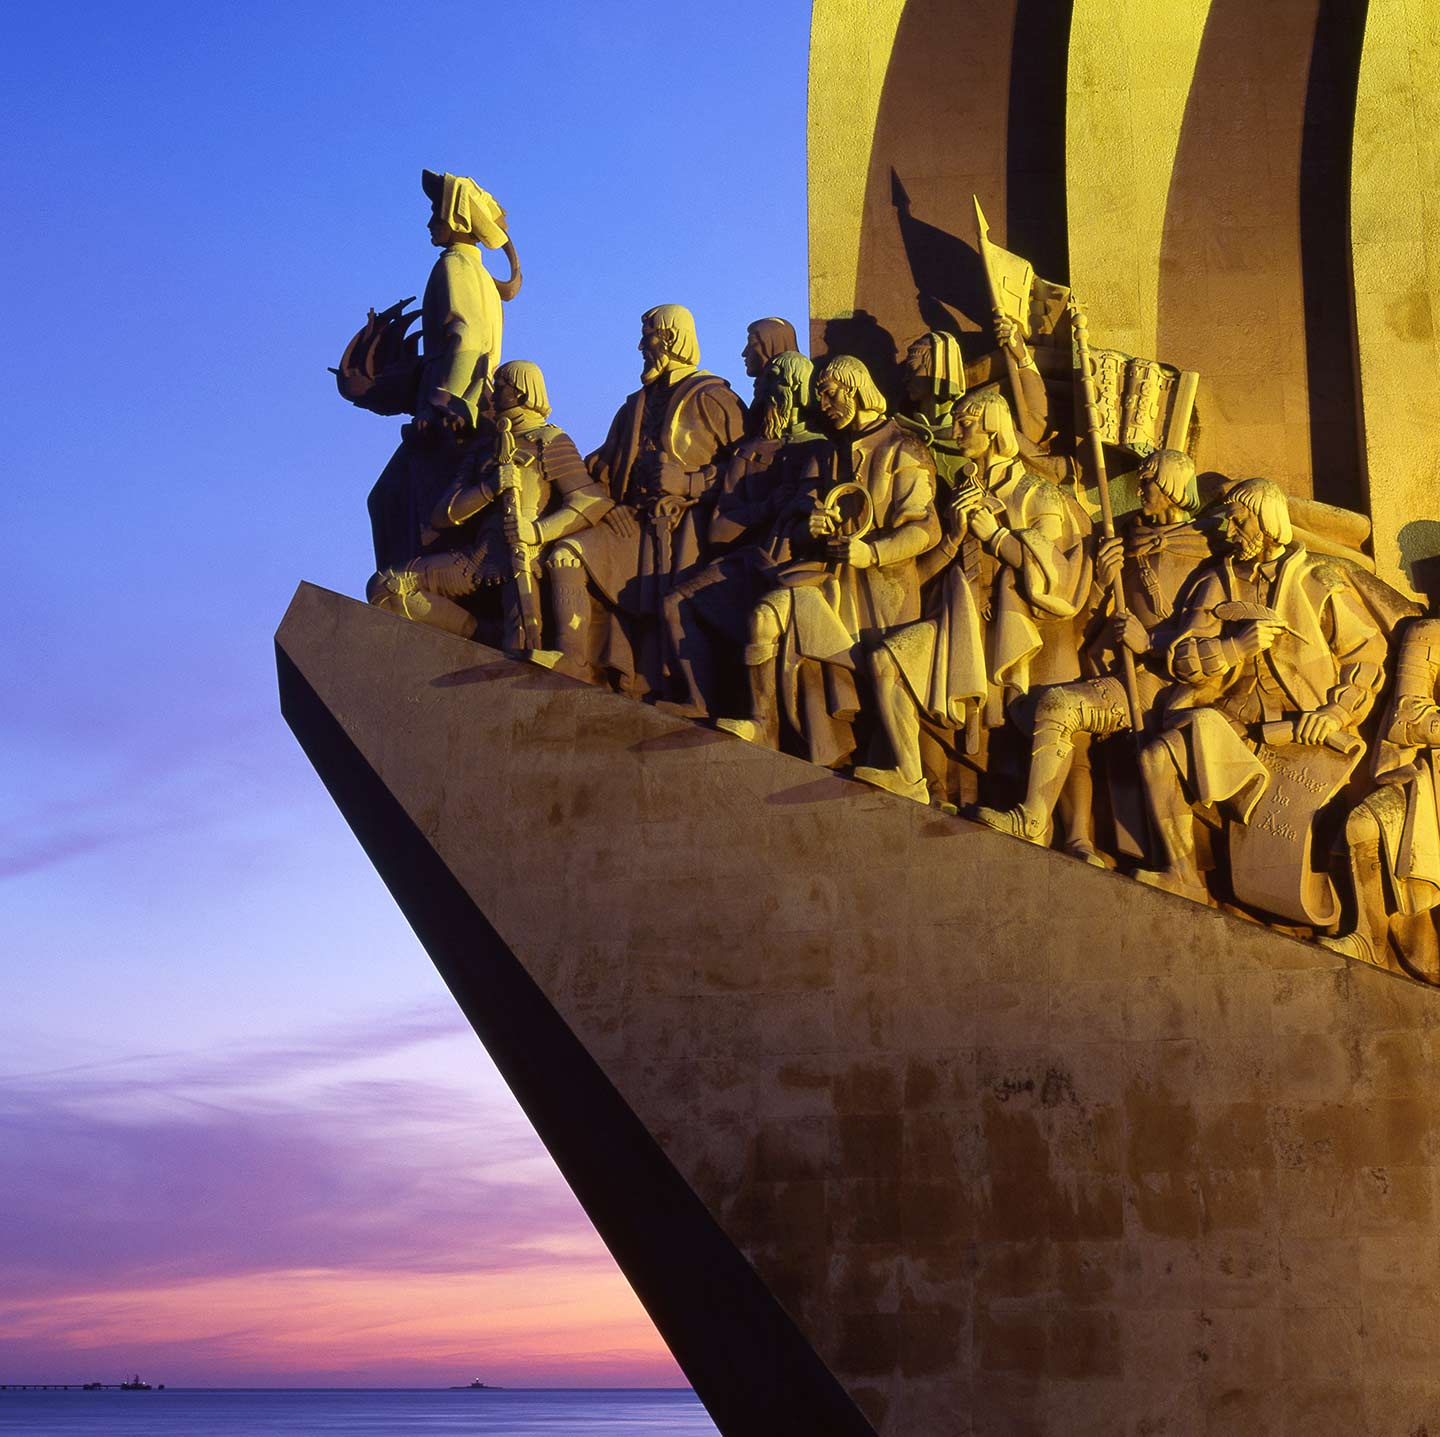 Image of the Monument to the Discoveries, LIsbon